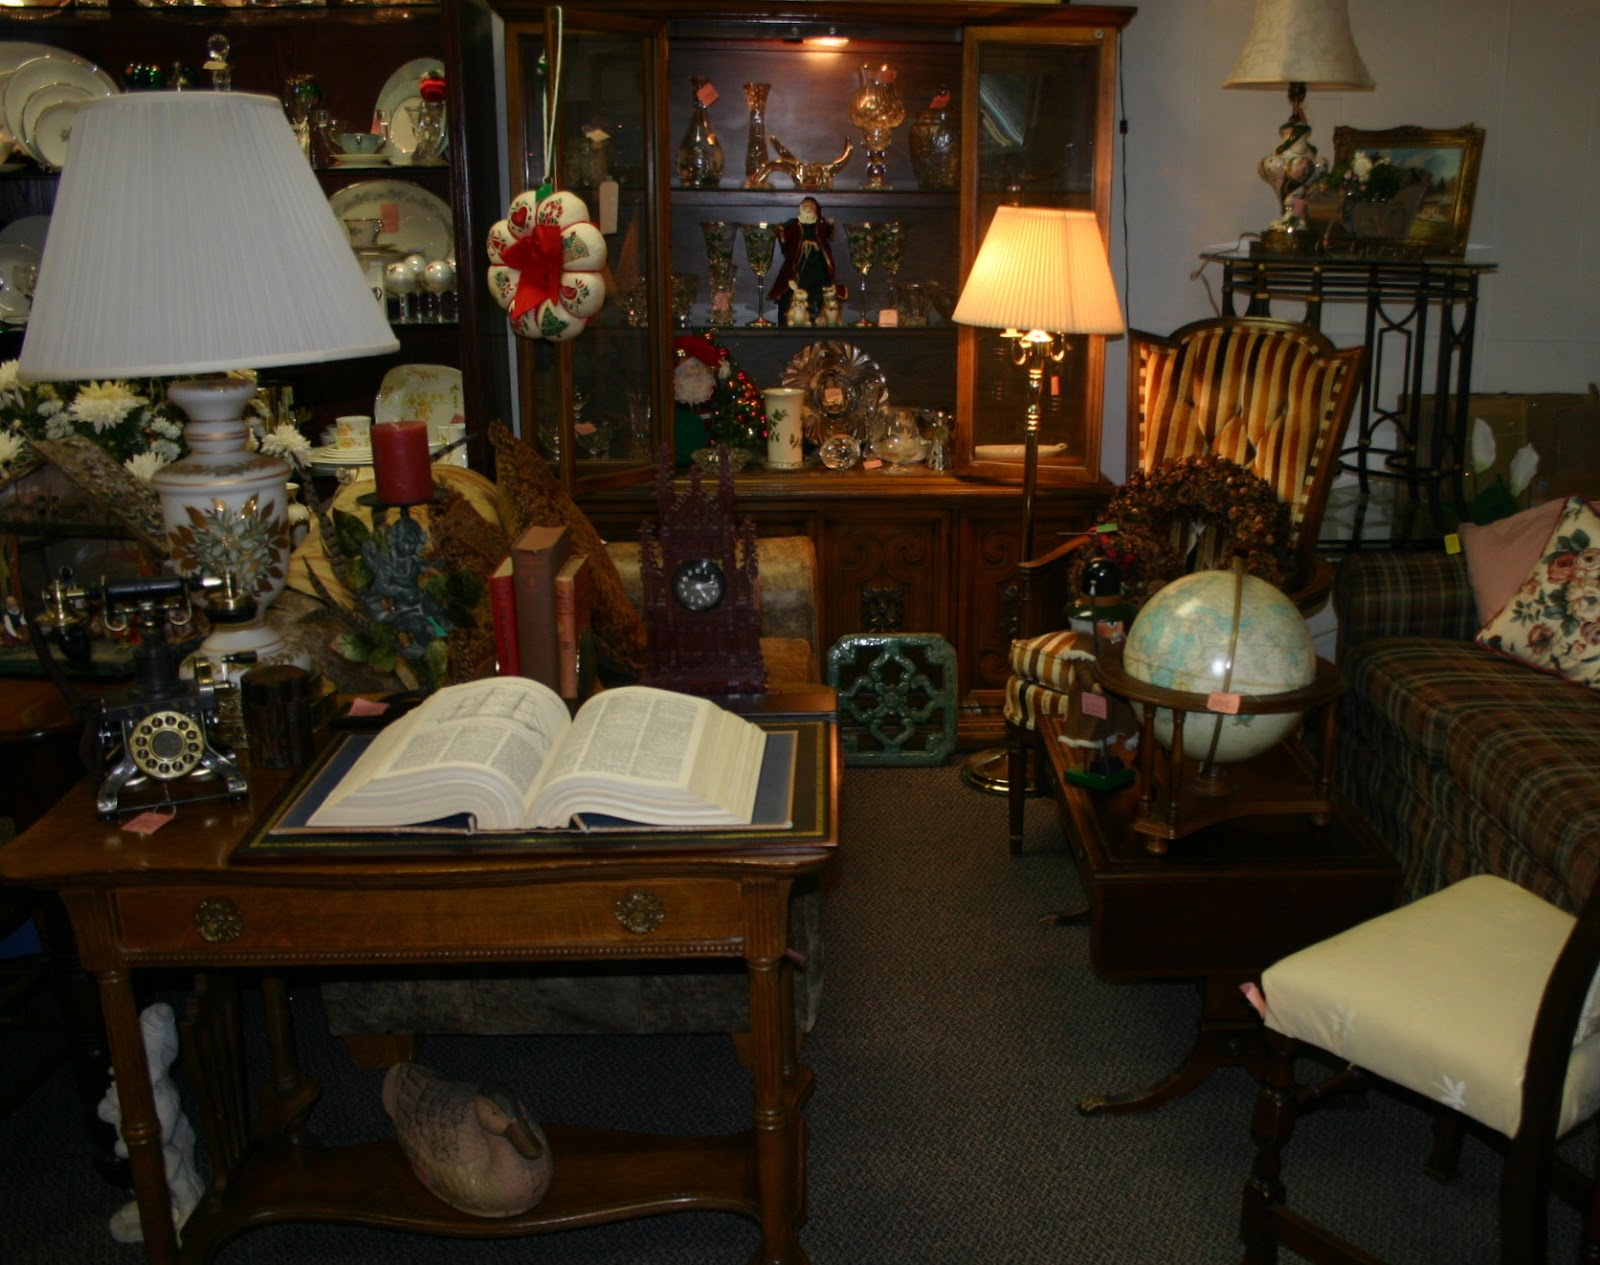 Resale Furniture Store Near Wheaton Il Treasure House Treasure House Resale Shop Glen Ellyn Il